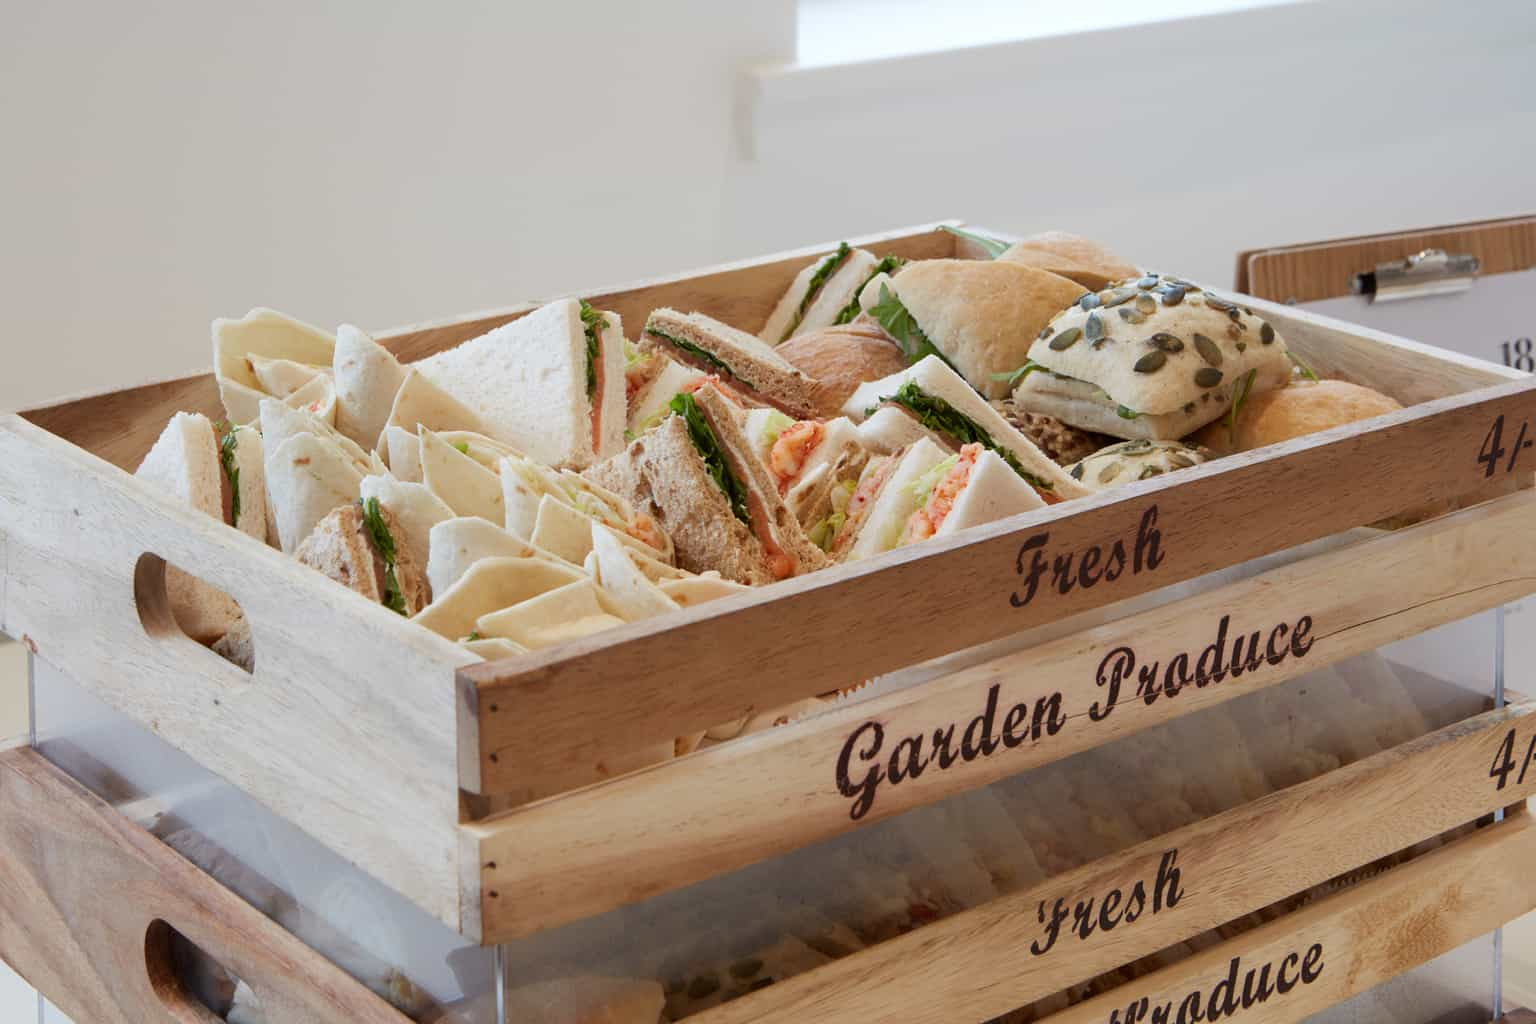 18 Smith Square Conference Venue, Hospitality, Selection of sandwiches and rolls in a wooden display tray